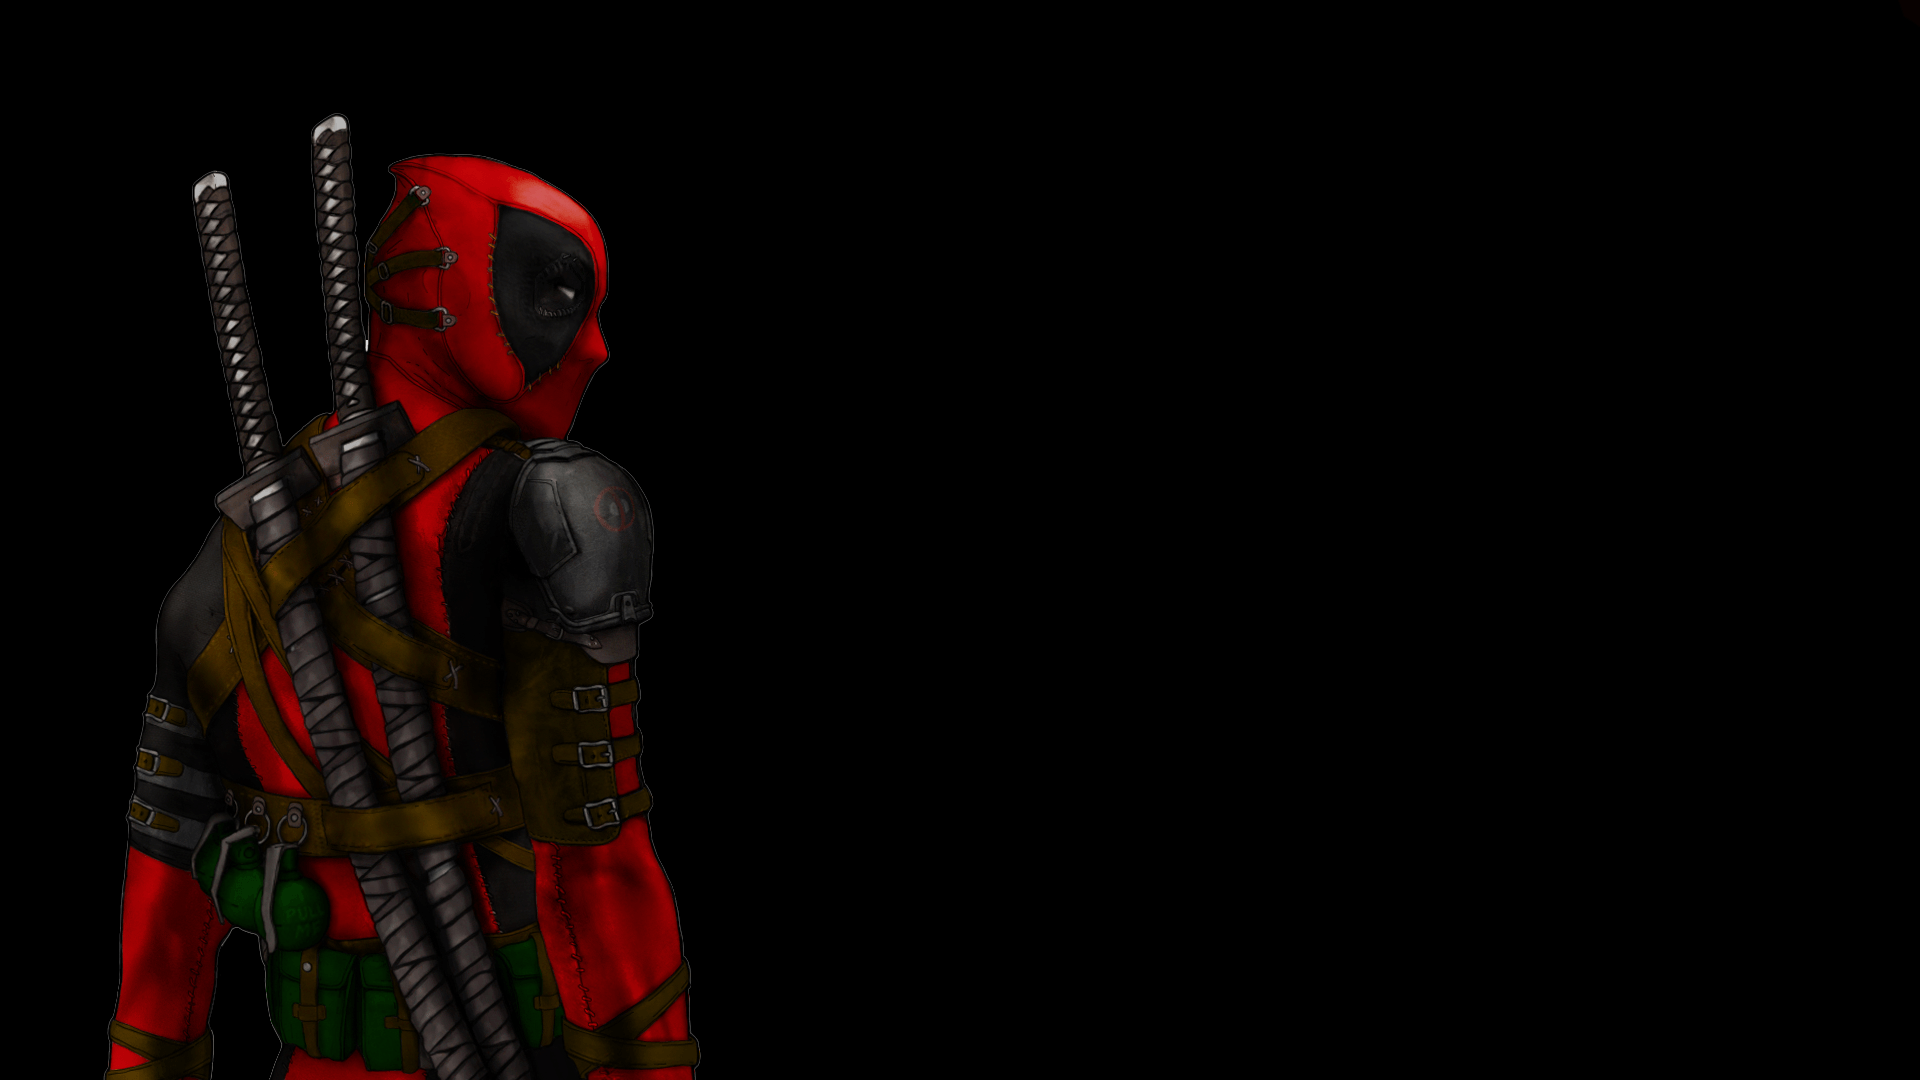 Wallpapers For > Deadpool Movie Wallpapers Hd